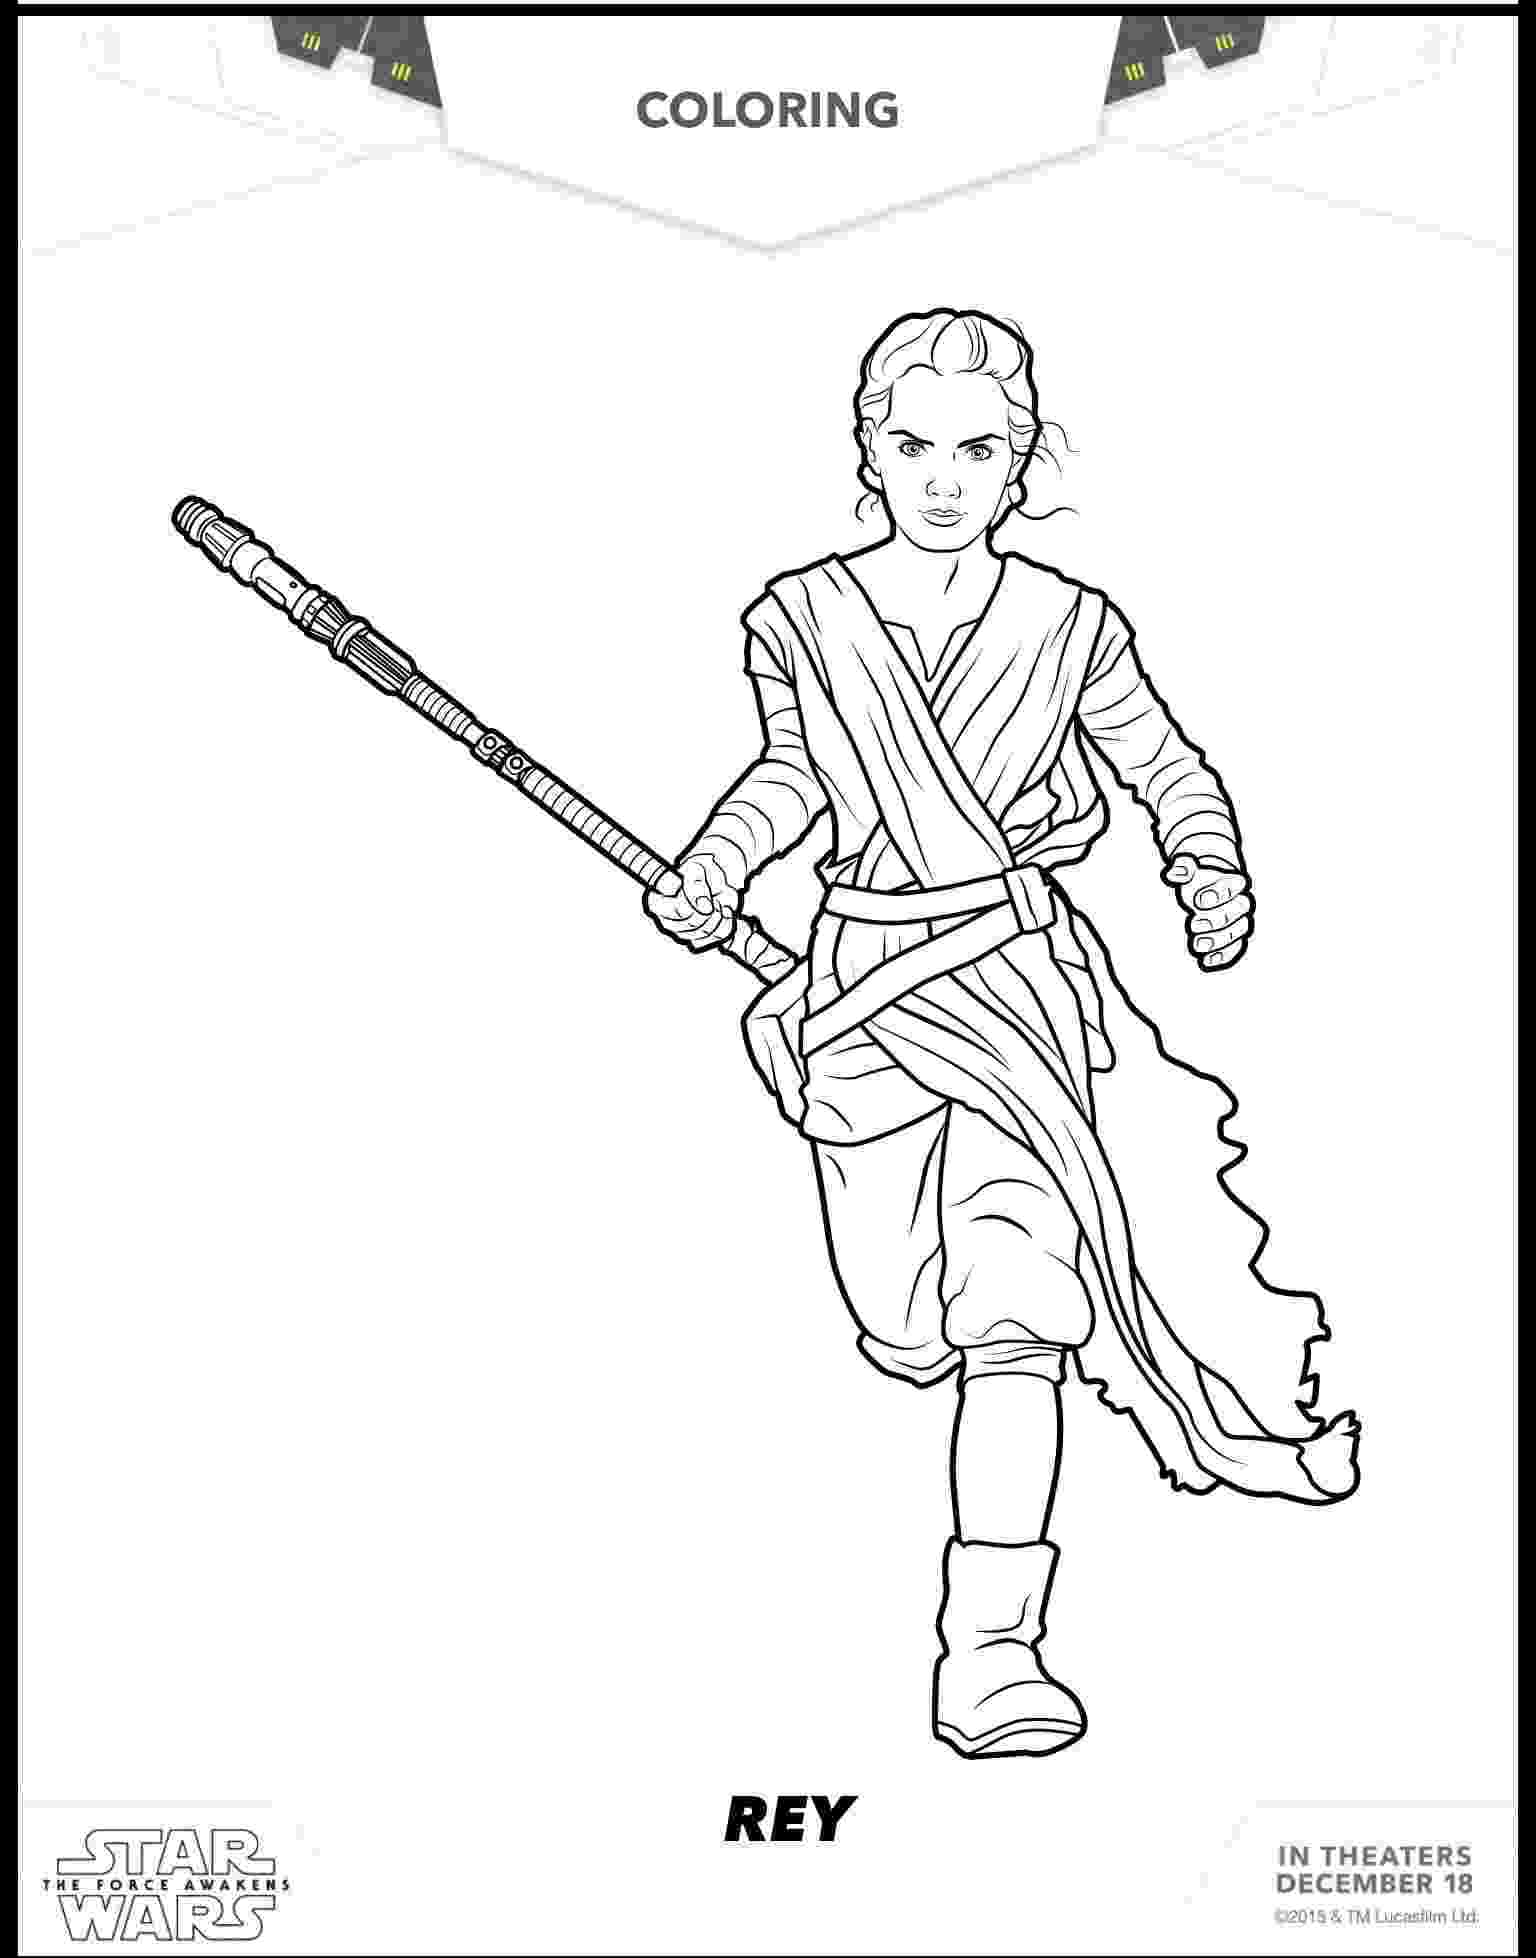 coloring pages printable star wars lego star wars coloring pages to download and print for free pages coloring star wars printable